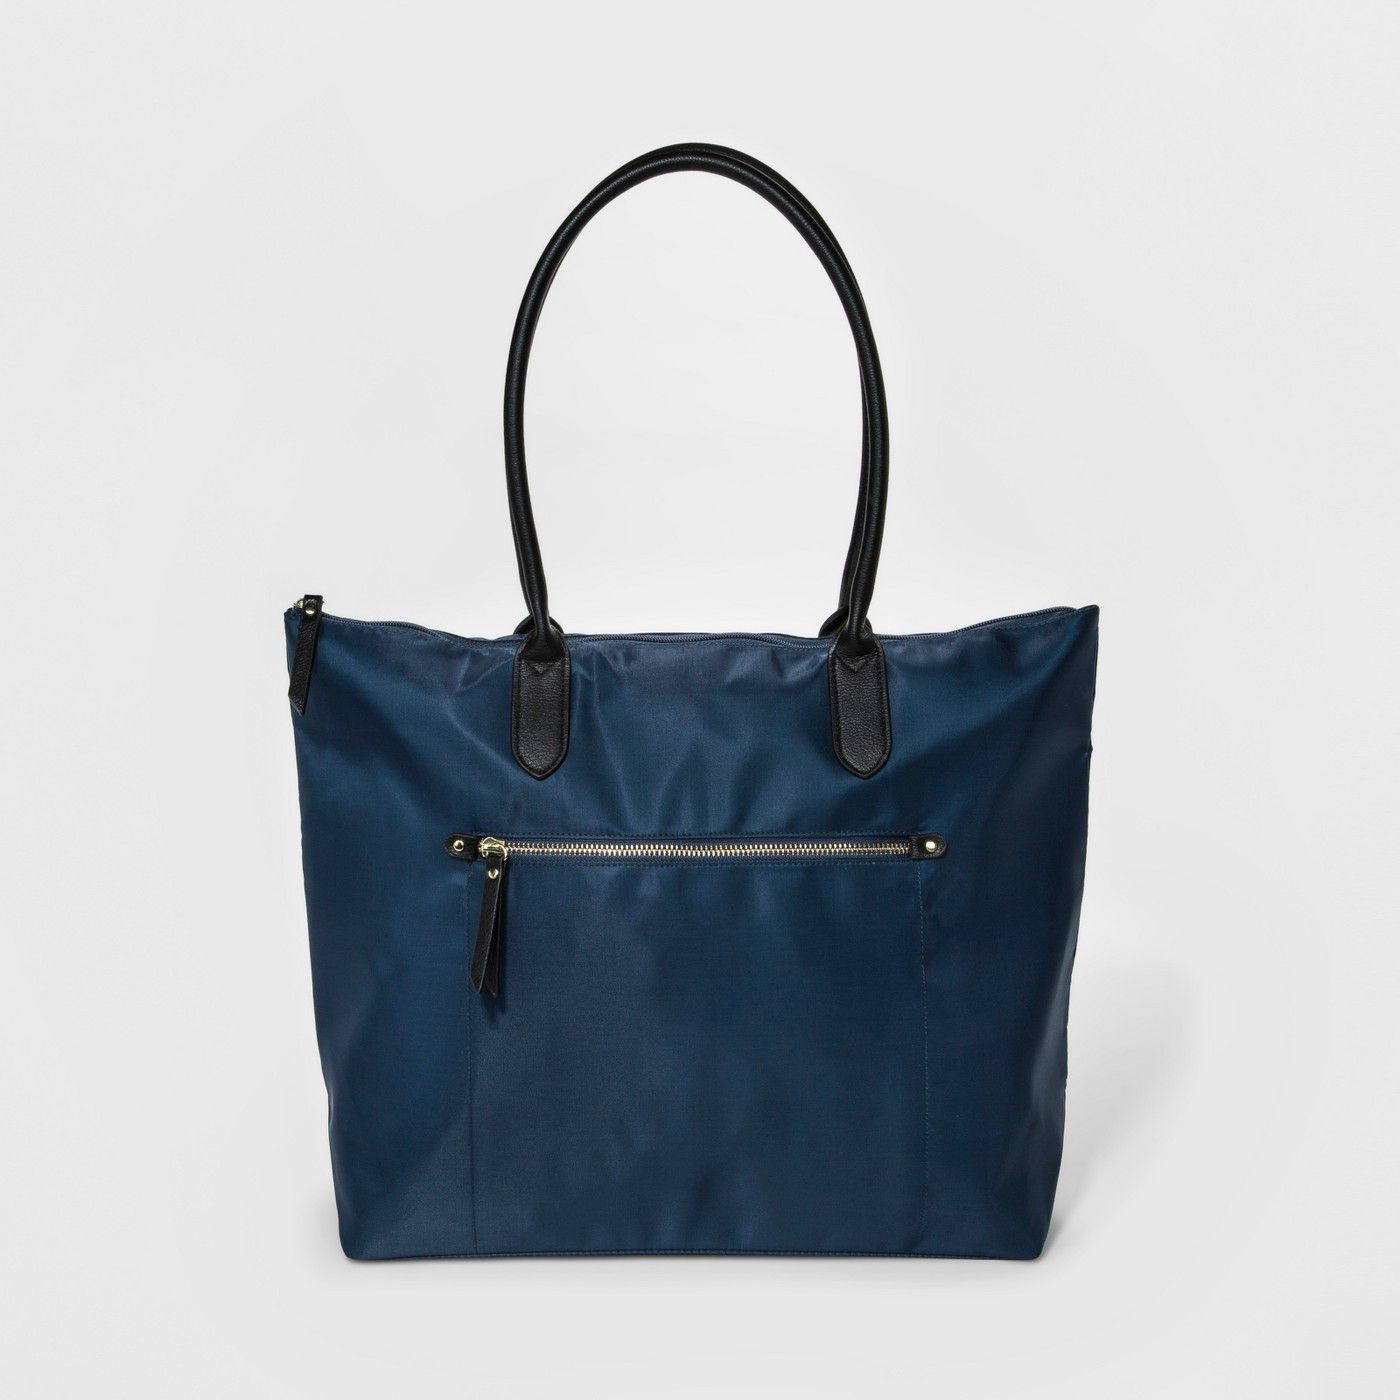 68200deb81 The 8 Best Nylon Tote Bags of 2019